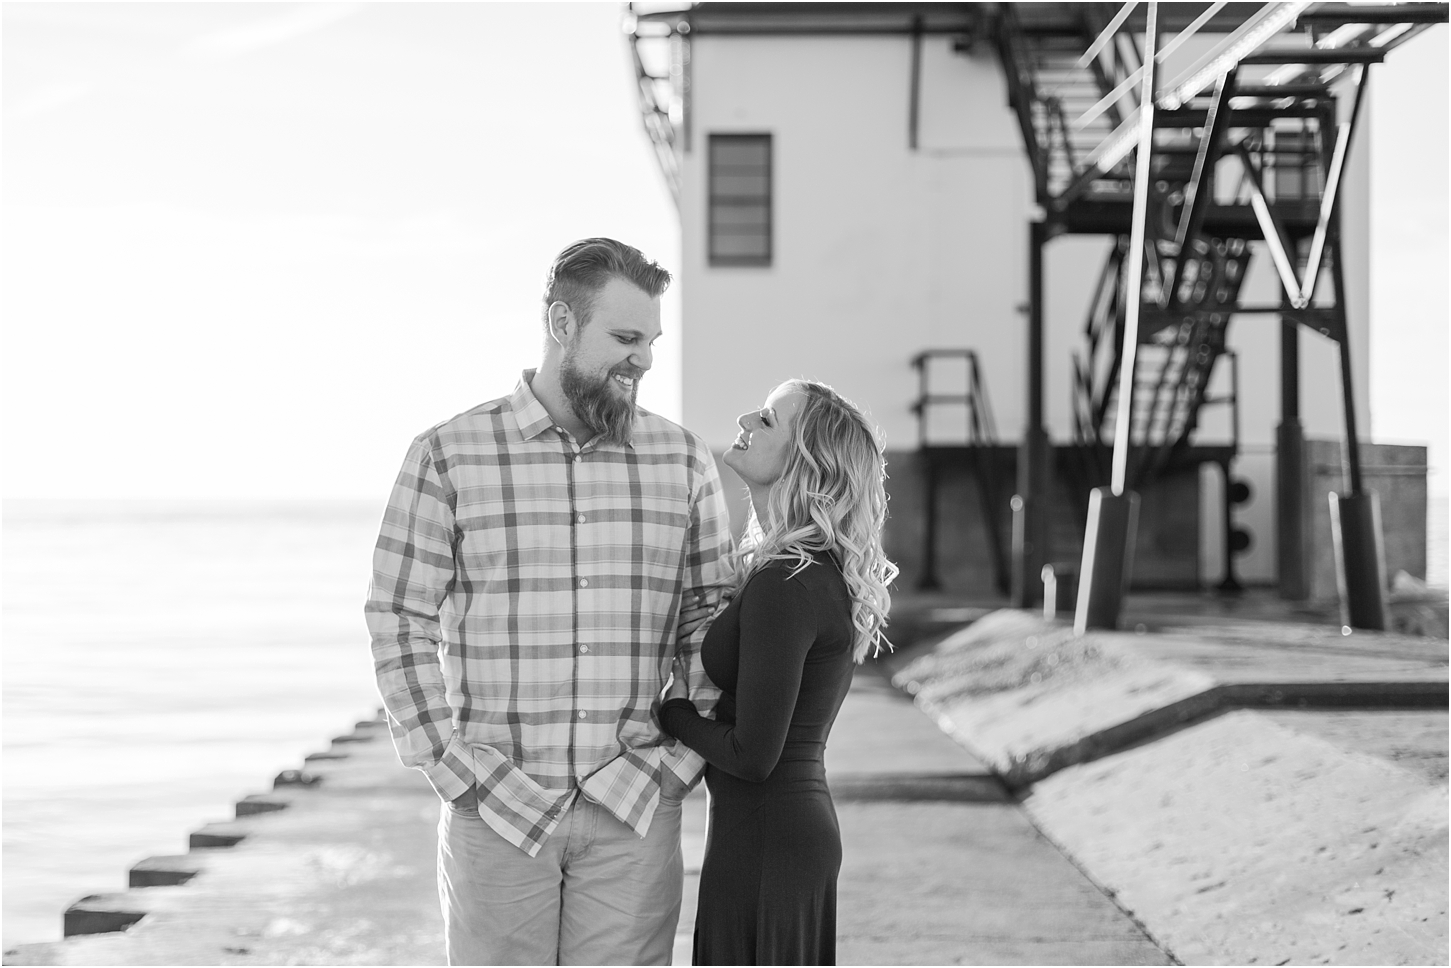 romantic-sunset-beach-engagement-photos-at-silver-beach-in-saint-joseph-mi-by-courtney-carolyn-photography_0015.jpg